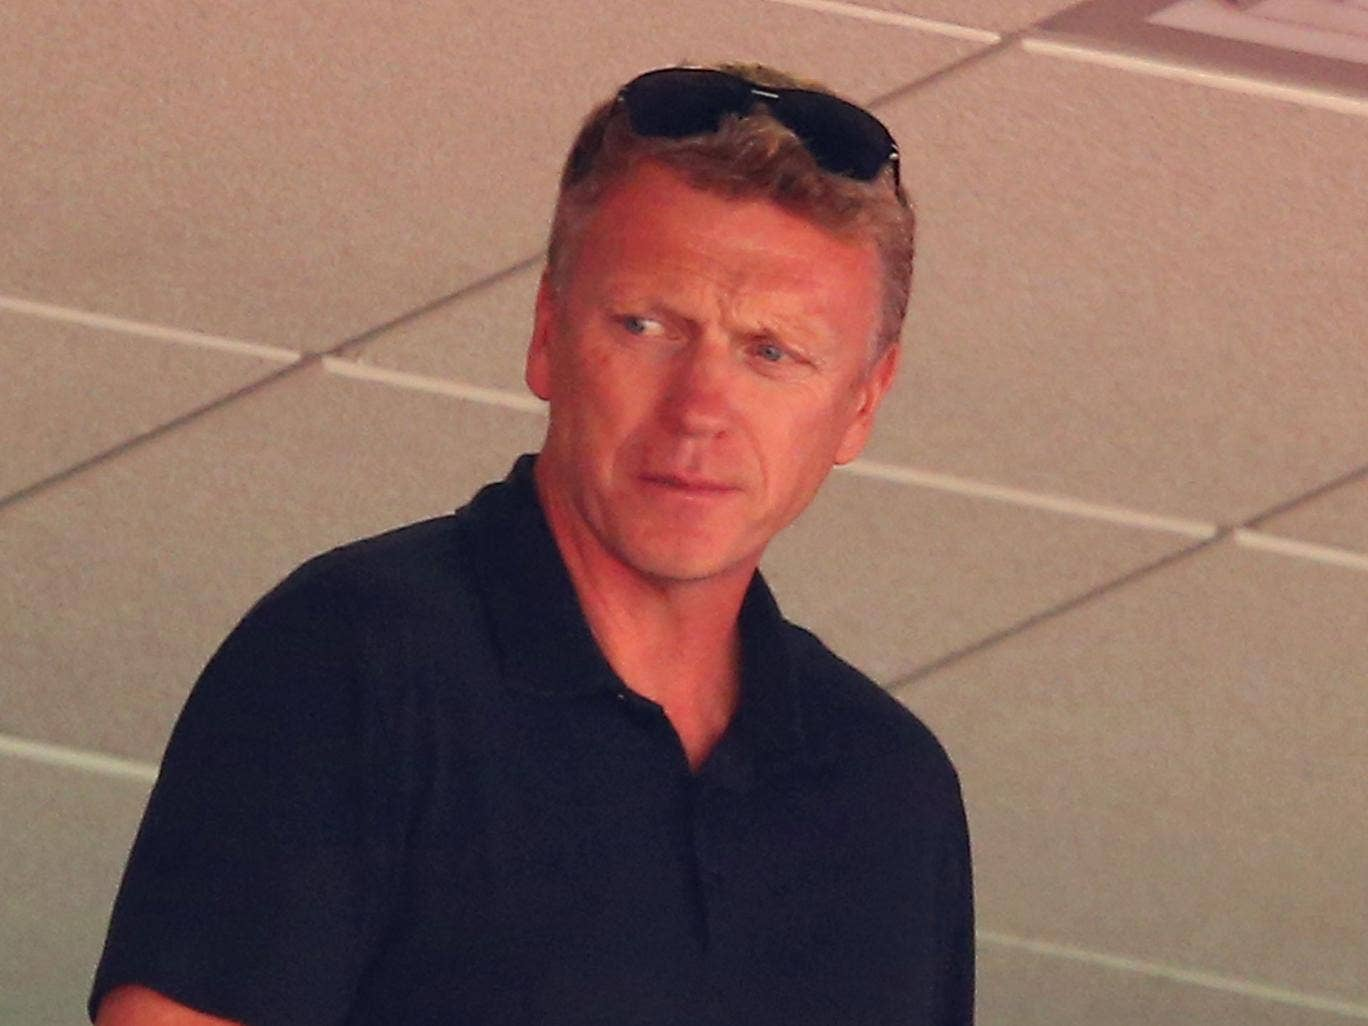 David Moyes looks on from the stands during the International friendly match between Ecuador and England